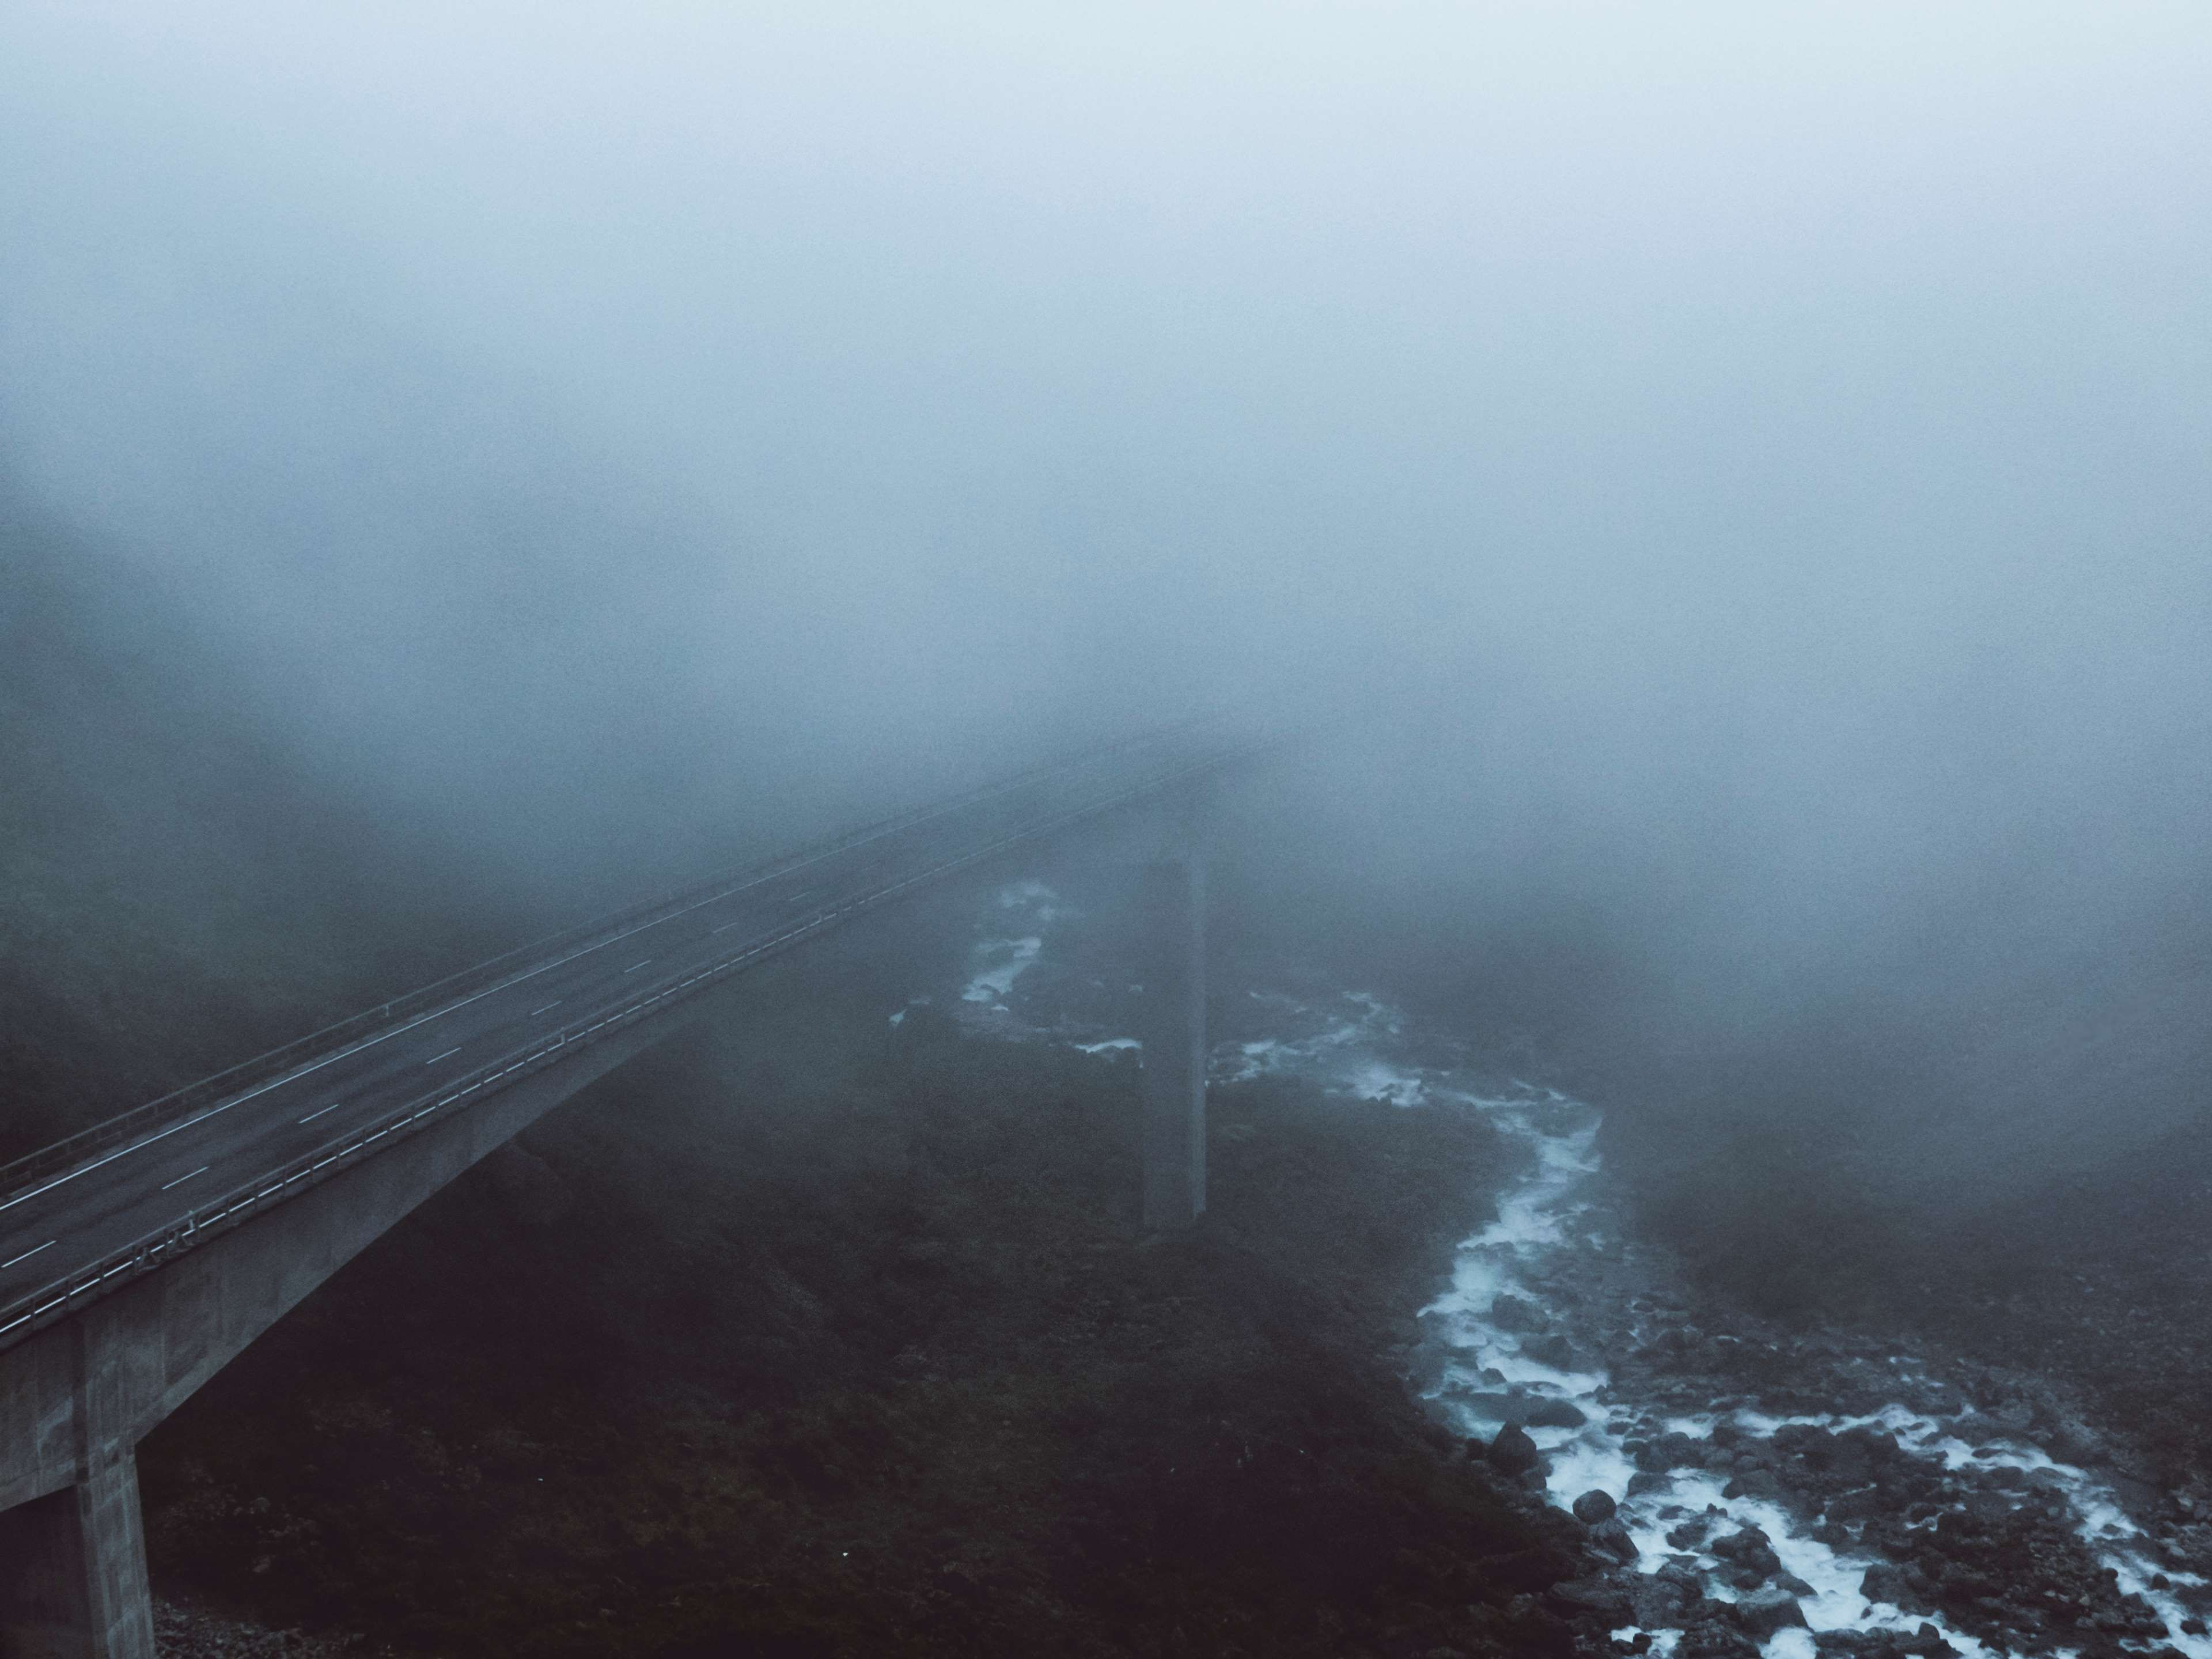 Architecture Bridge Dark Fog Foggy Outdoors River Road Water Weather 4k Wallpaper And Background